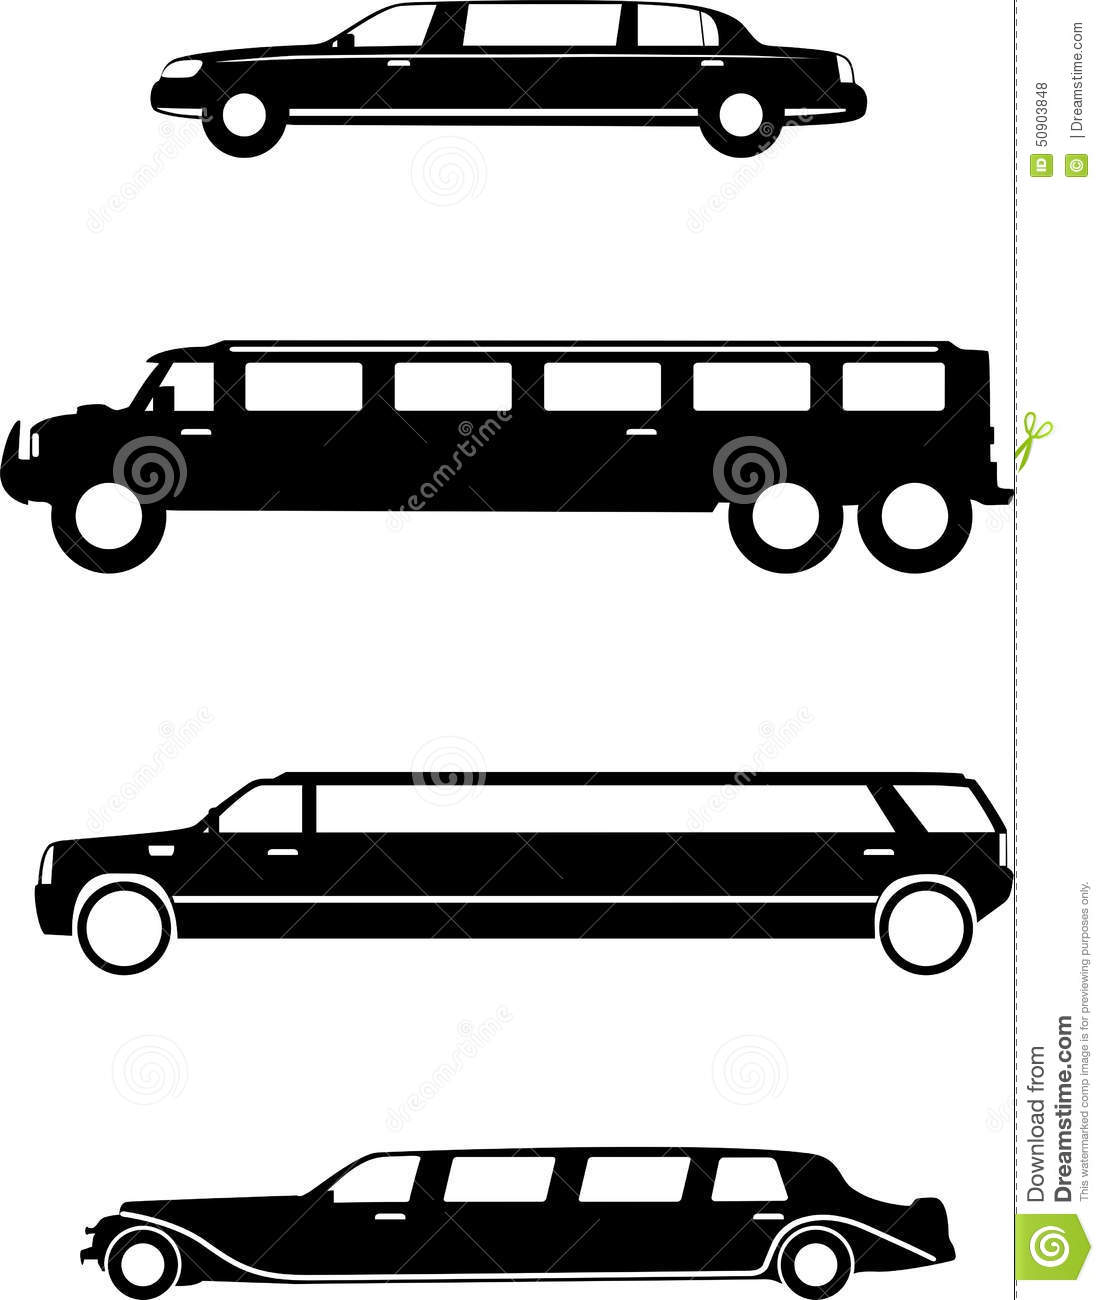 Stock Illustration Limousine Transport Car Long Car Automobile Celebration Nuptials Mariage Hummer Lincoln Town Car Chrysler Clipart Black White Image50903848 on rolls royce logo